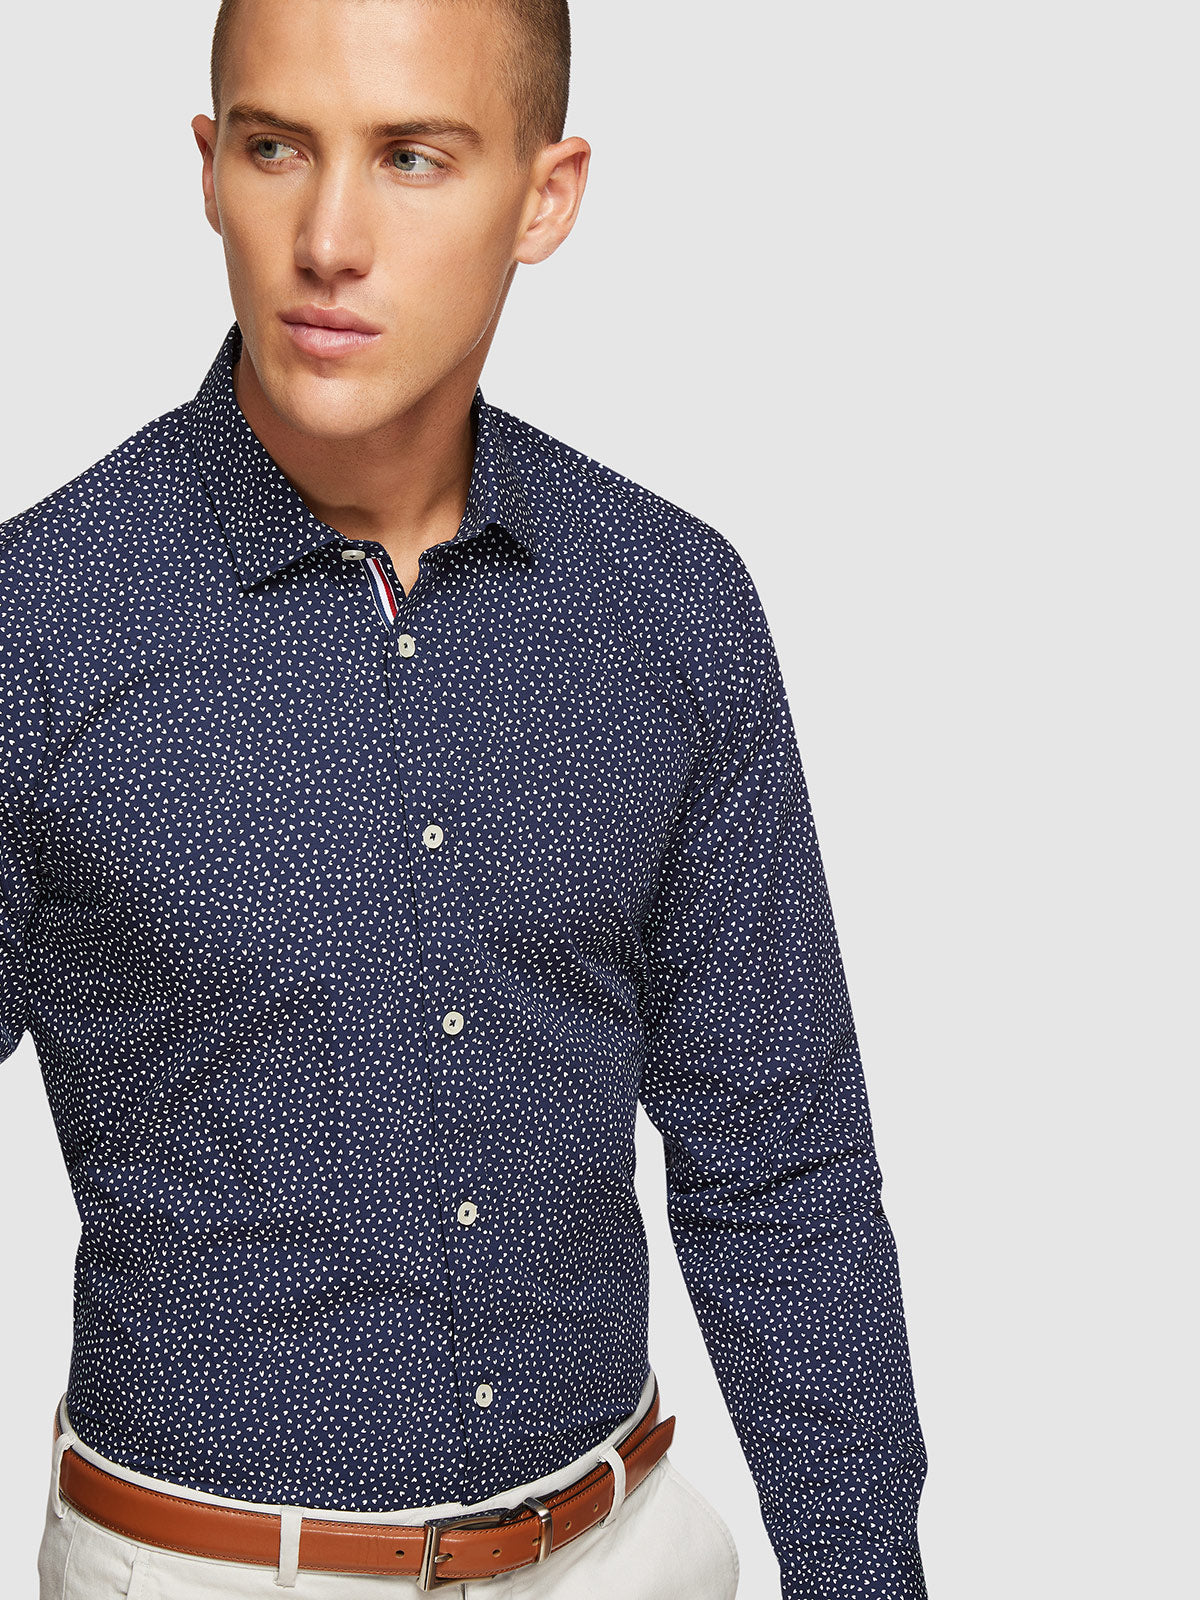 KENTON PRINTED REGULAR FIT SHIRT NAVY